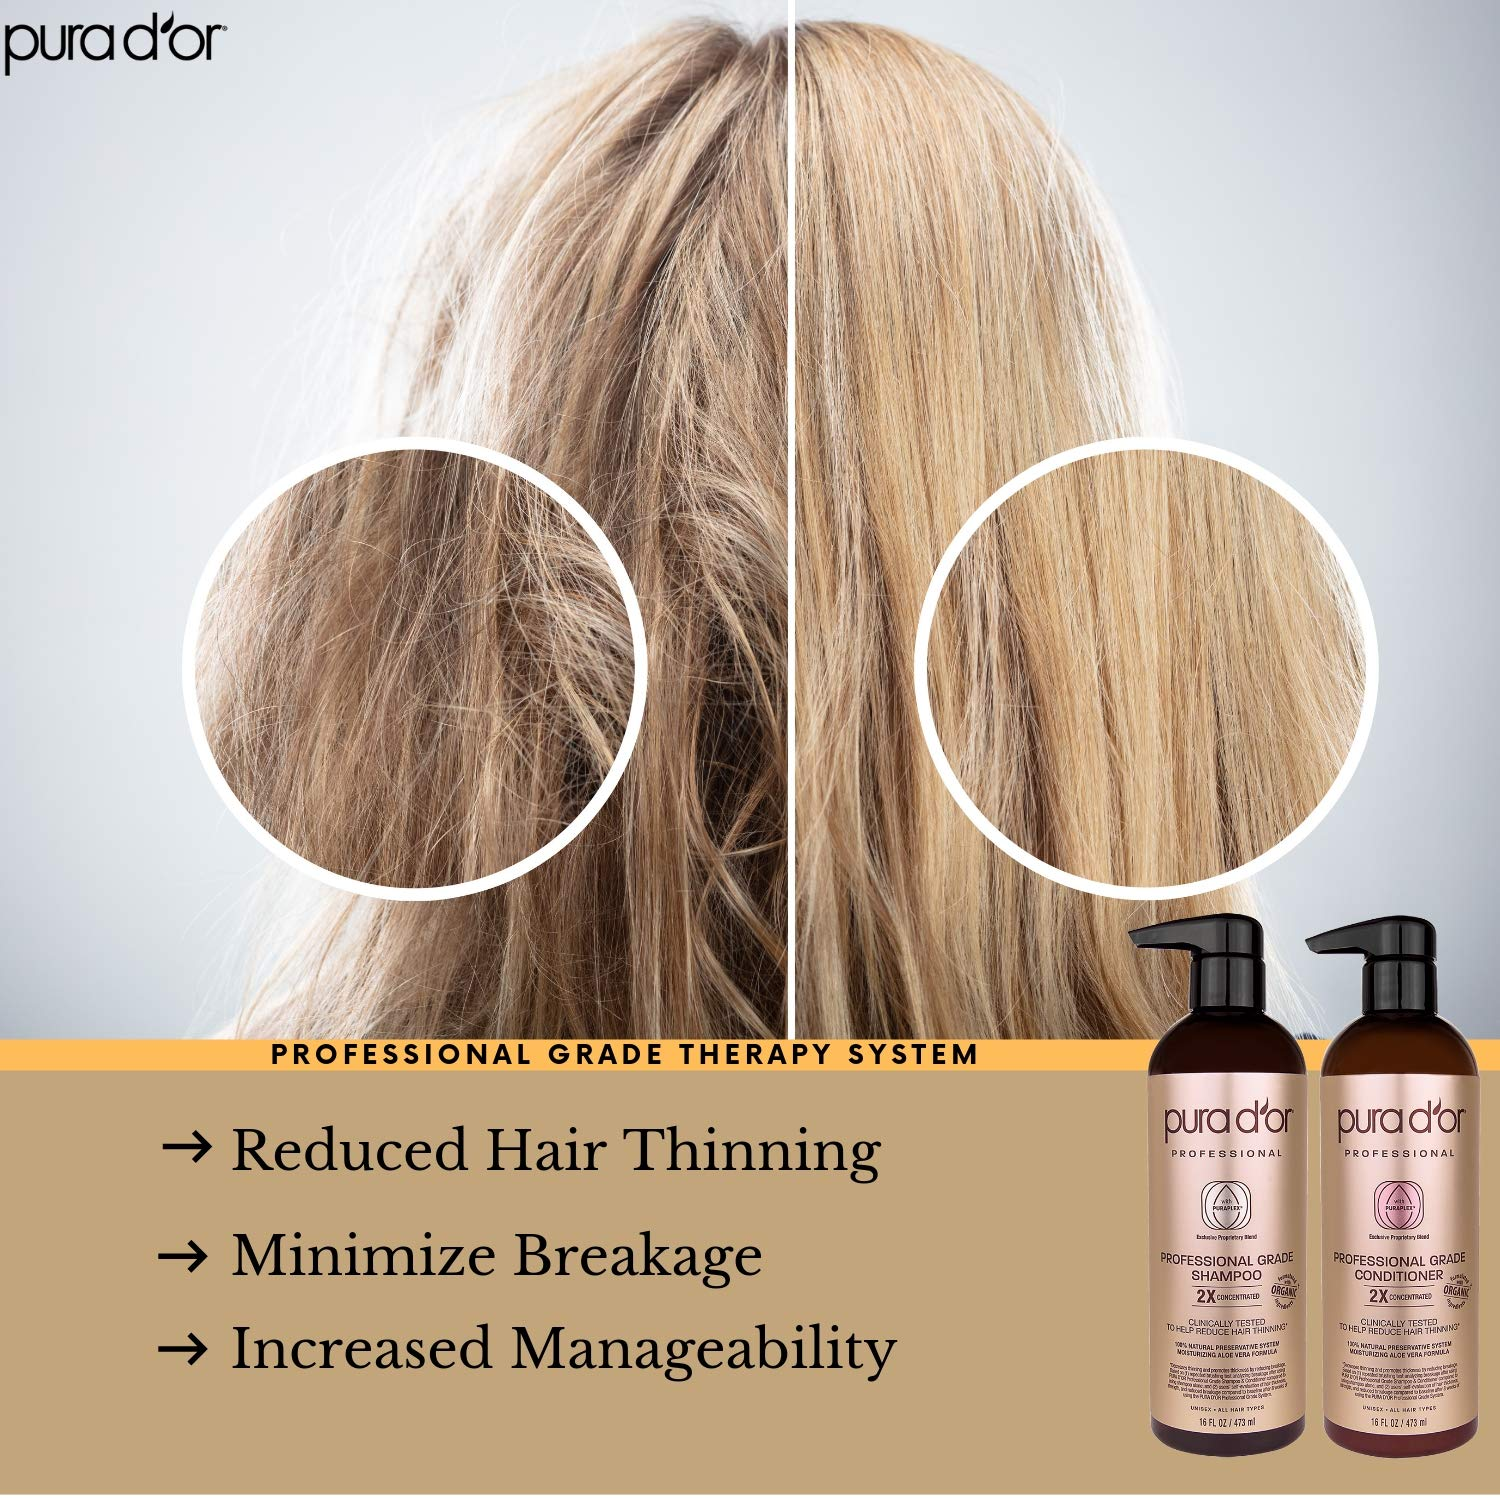 PURA D'OR Professional Grade Golden Biotin Anti-Hair Thinning 2X Concentrated Actives Shampoo & Conditioner Set, Sulfate Free, Natural Ingredients, Clinically Tested, Men & Women (Packaging may vary) by PURA D'OR (Image #5)